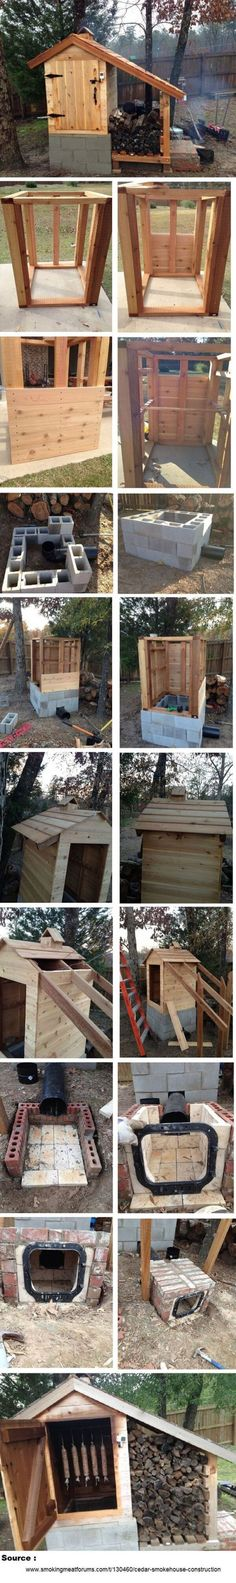 Unique Wood Storing Ideas for the Winter